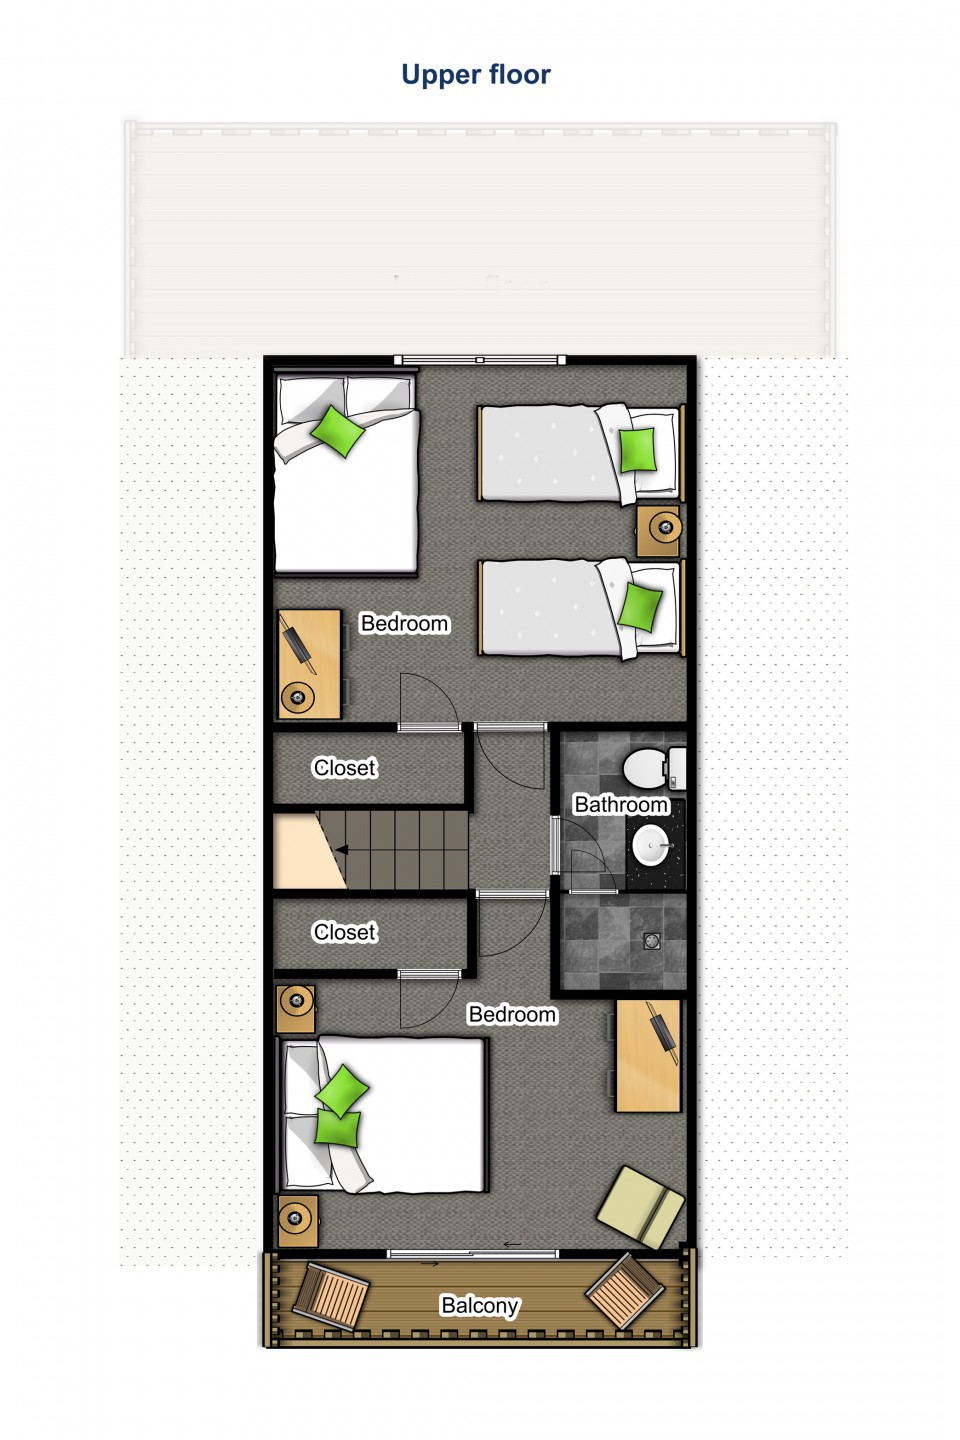 Upper floor — two bedrooms and a bathroom